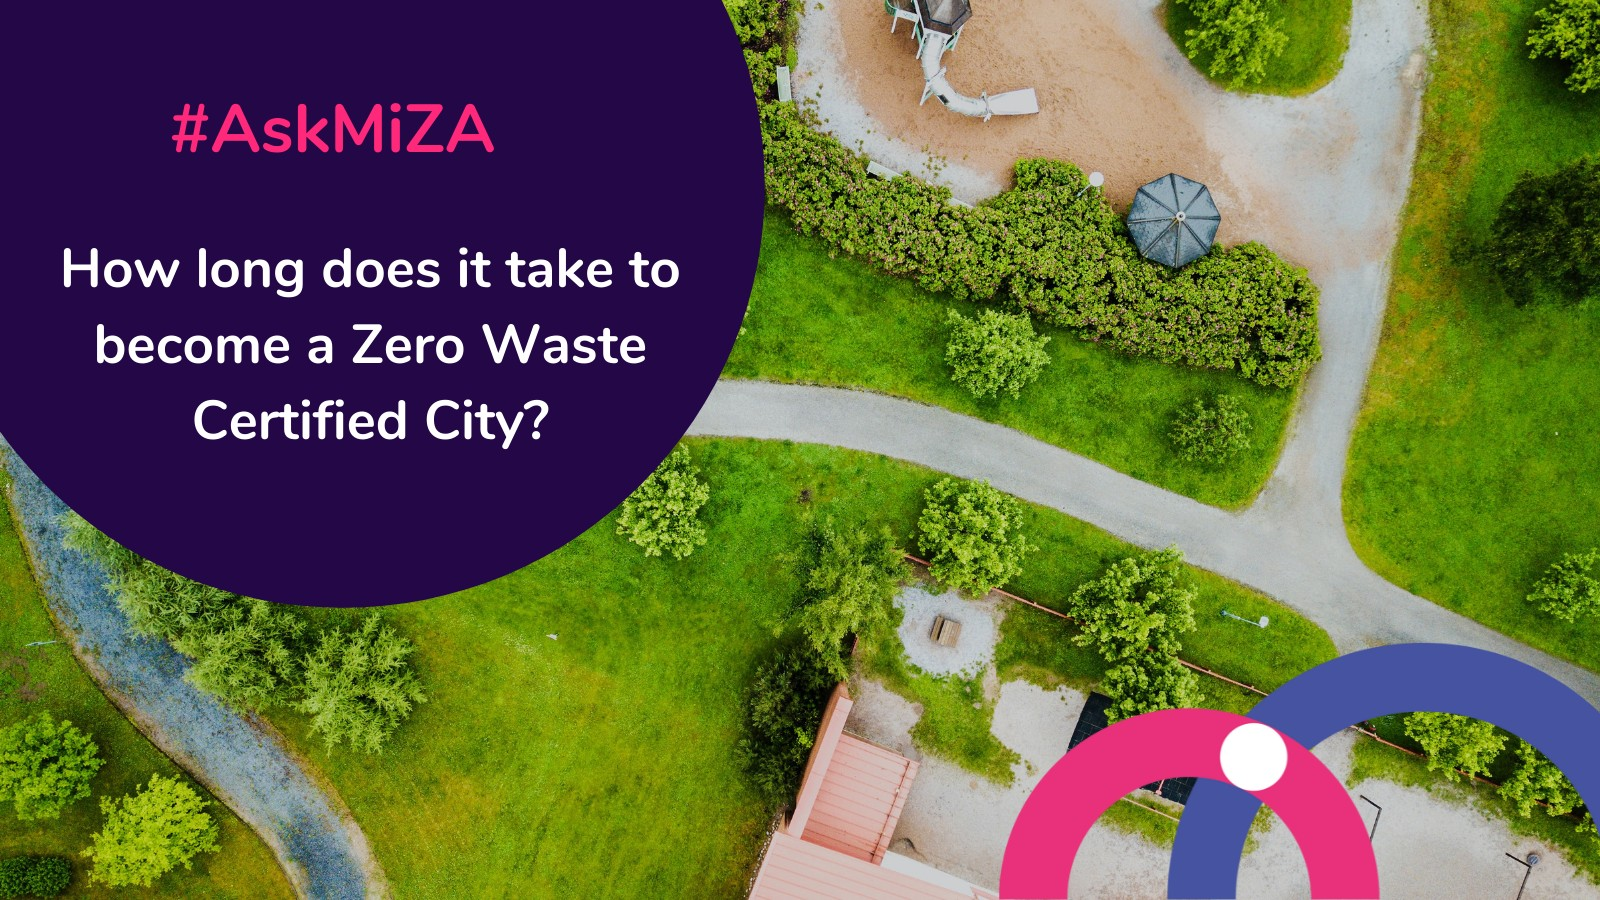 how-long-does-it-take-to-become-a-zero-waste-certified-city